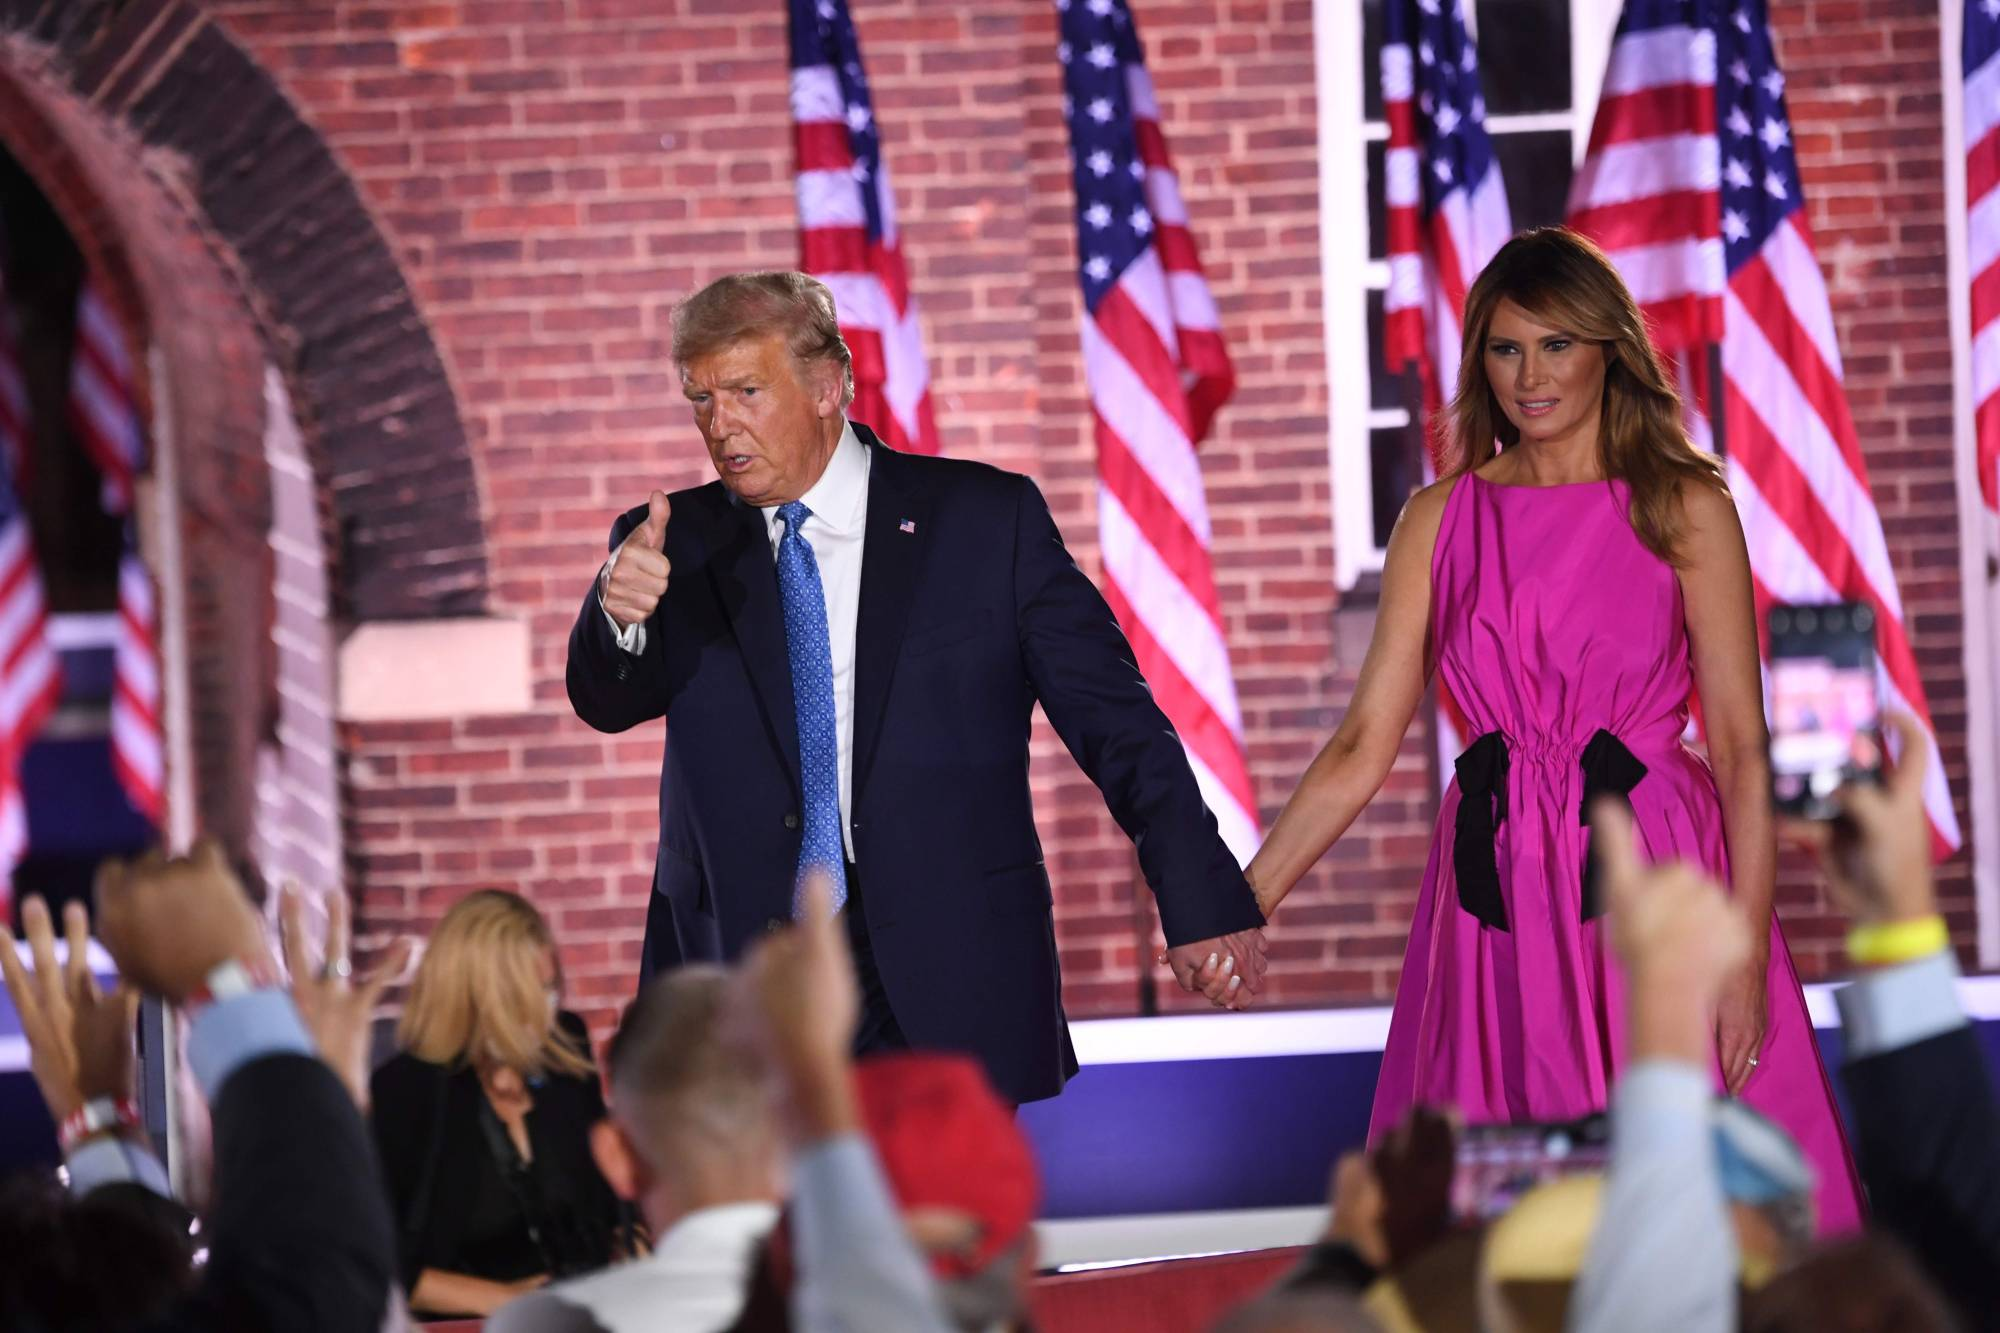 U.S. President Donald Trump holds hands with first lady Melania Trump at the conclusion of the third night of the Republican National Convention on Wednesday. | AFP-JIJI